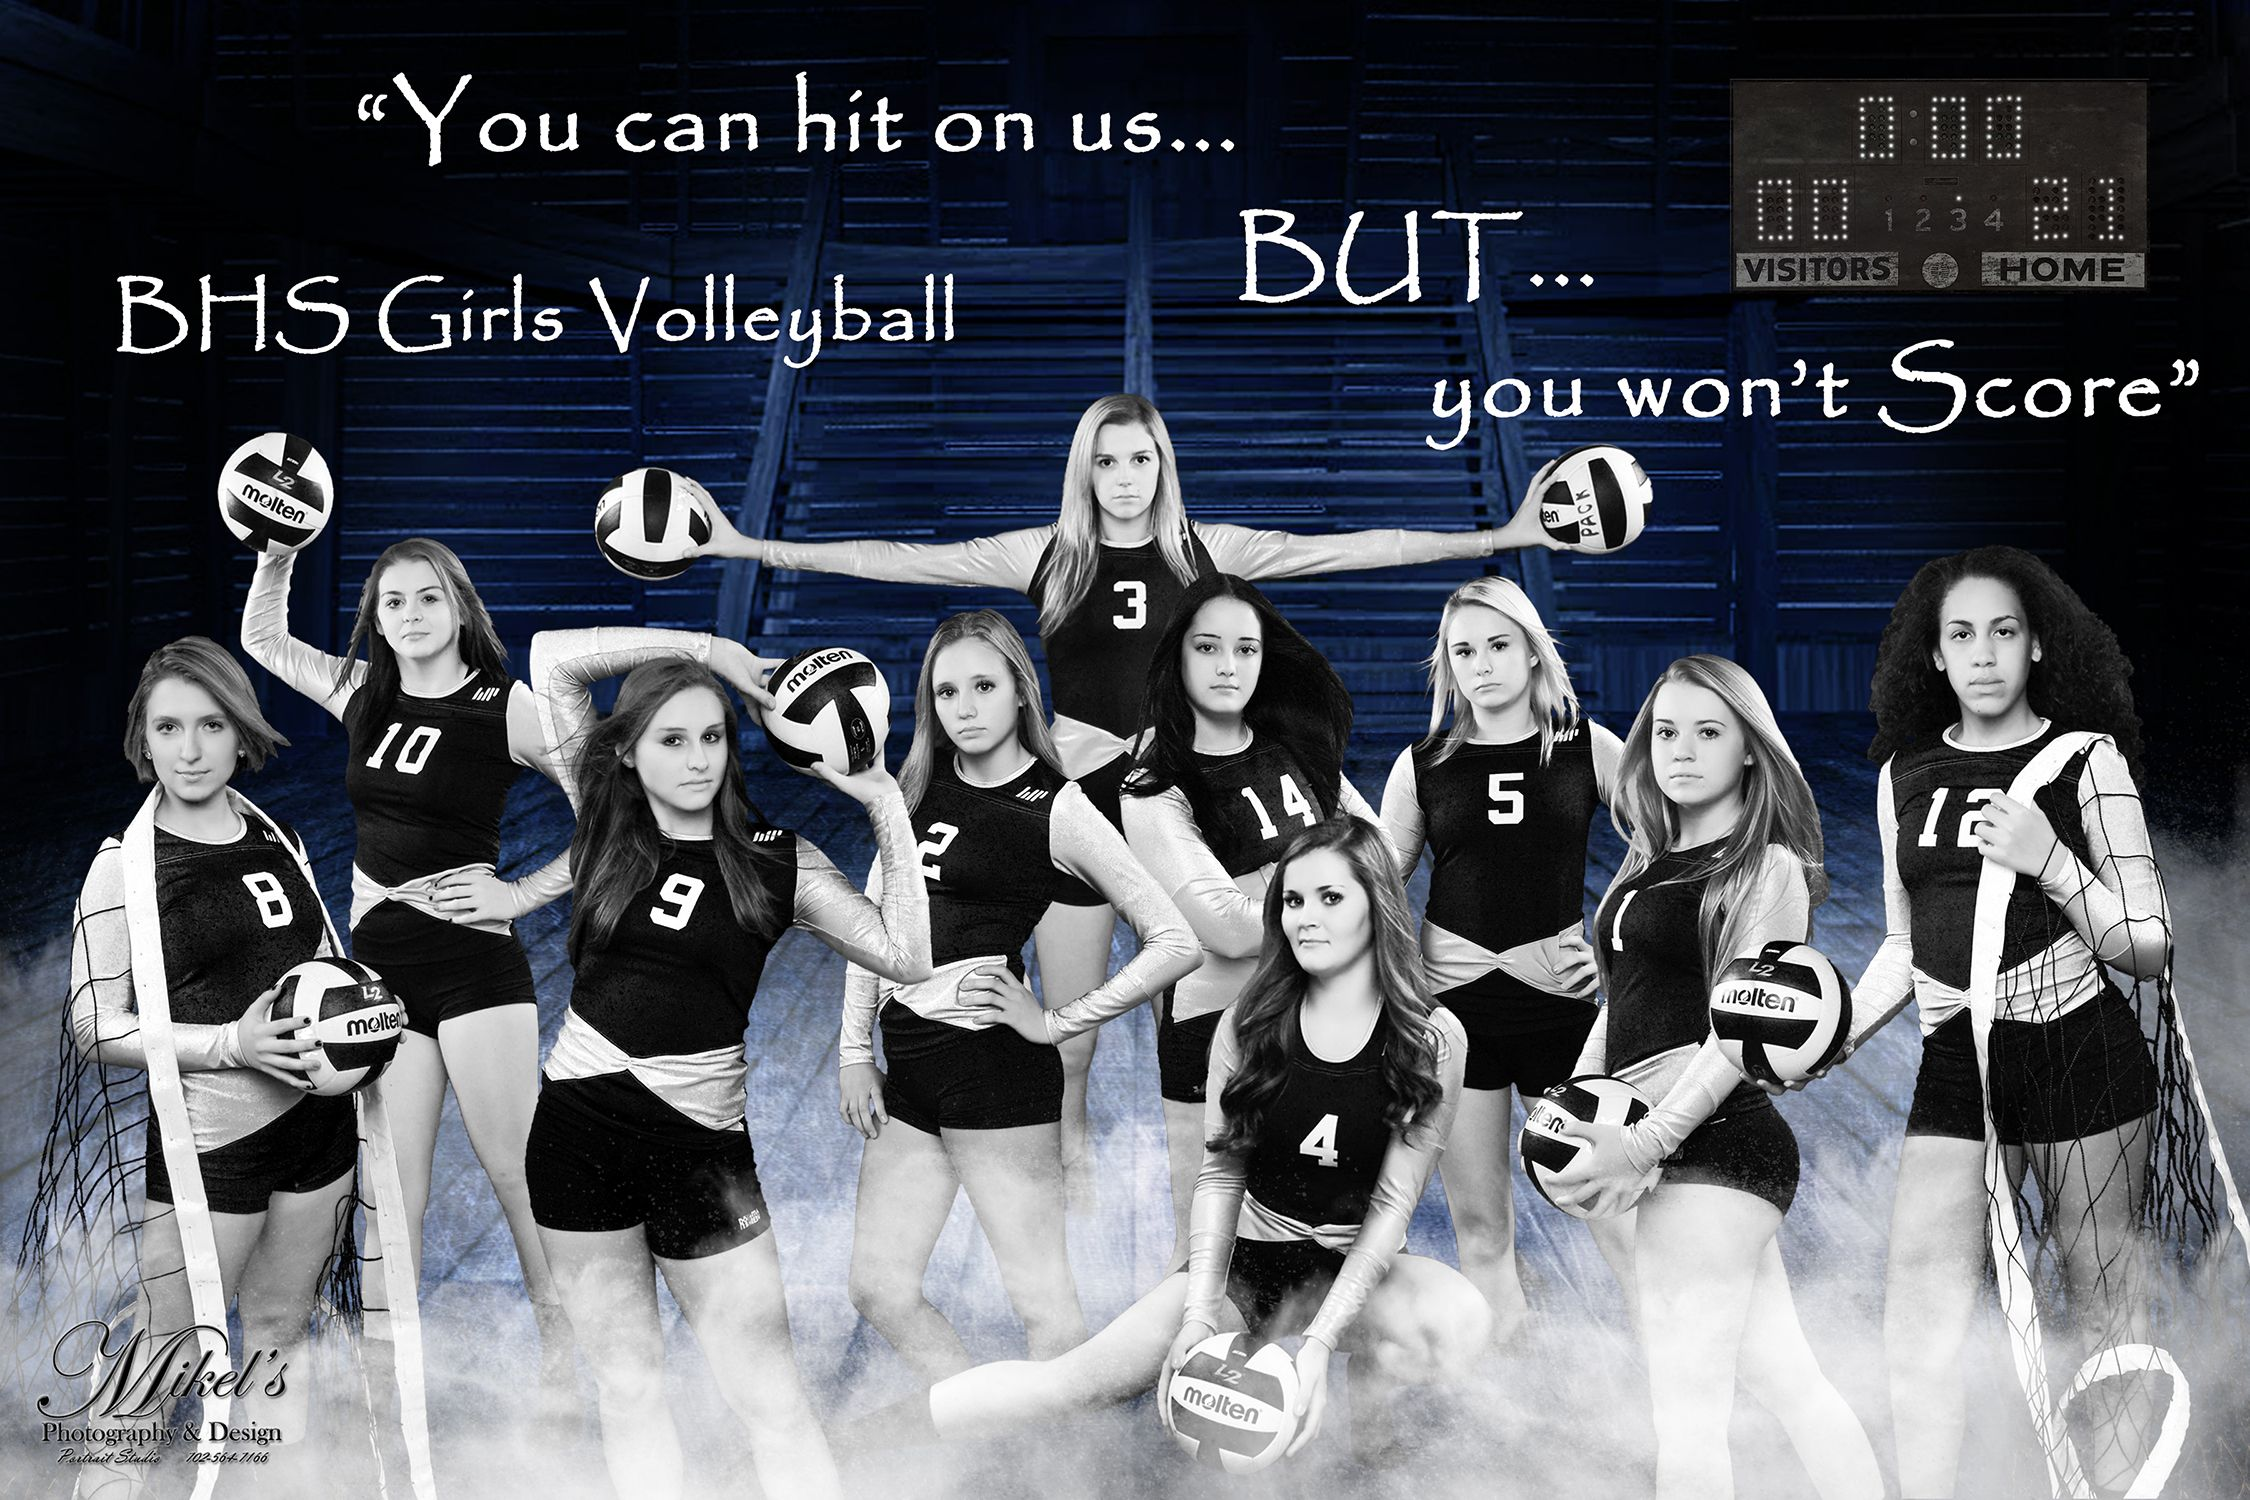 Bhs Women S Volleyball Team Banner You Can Hit On Them But You Won T Score Mikel S Photograph Volleyball Team Pictures Volleyball Photography Volleyball Team